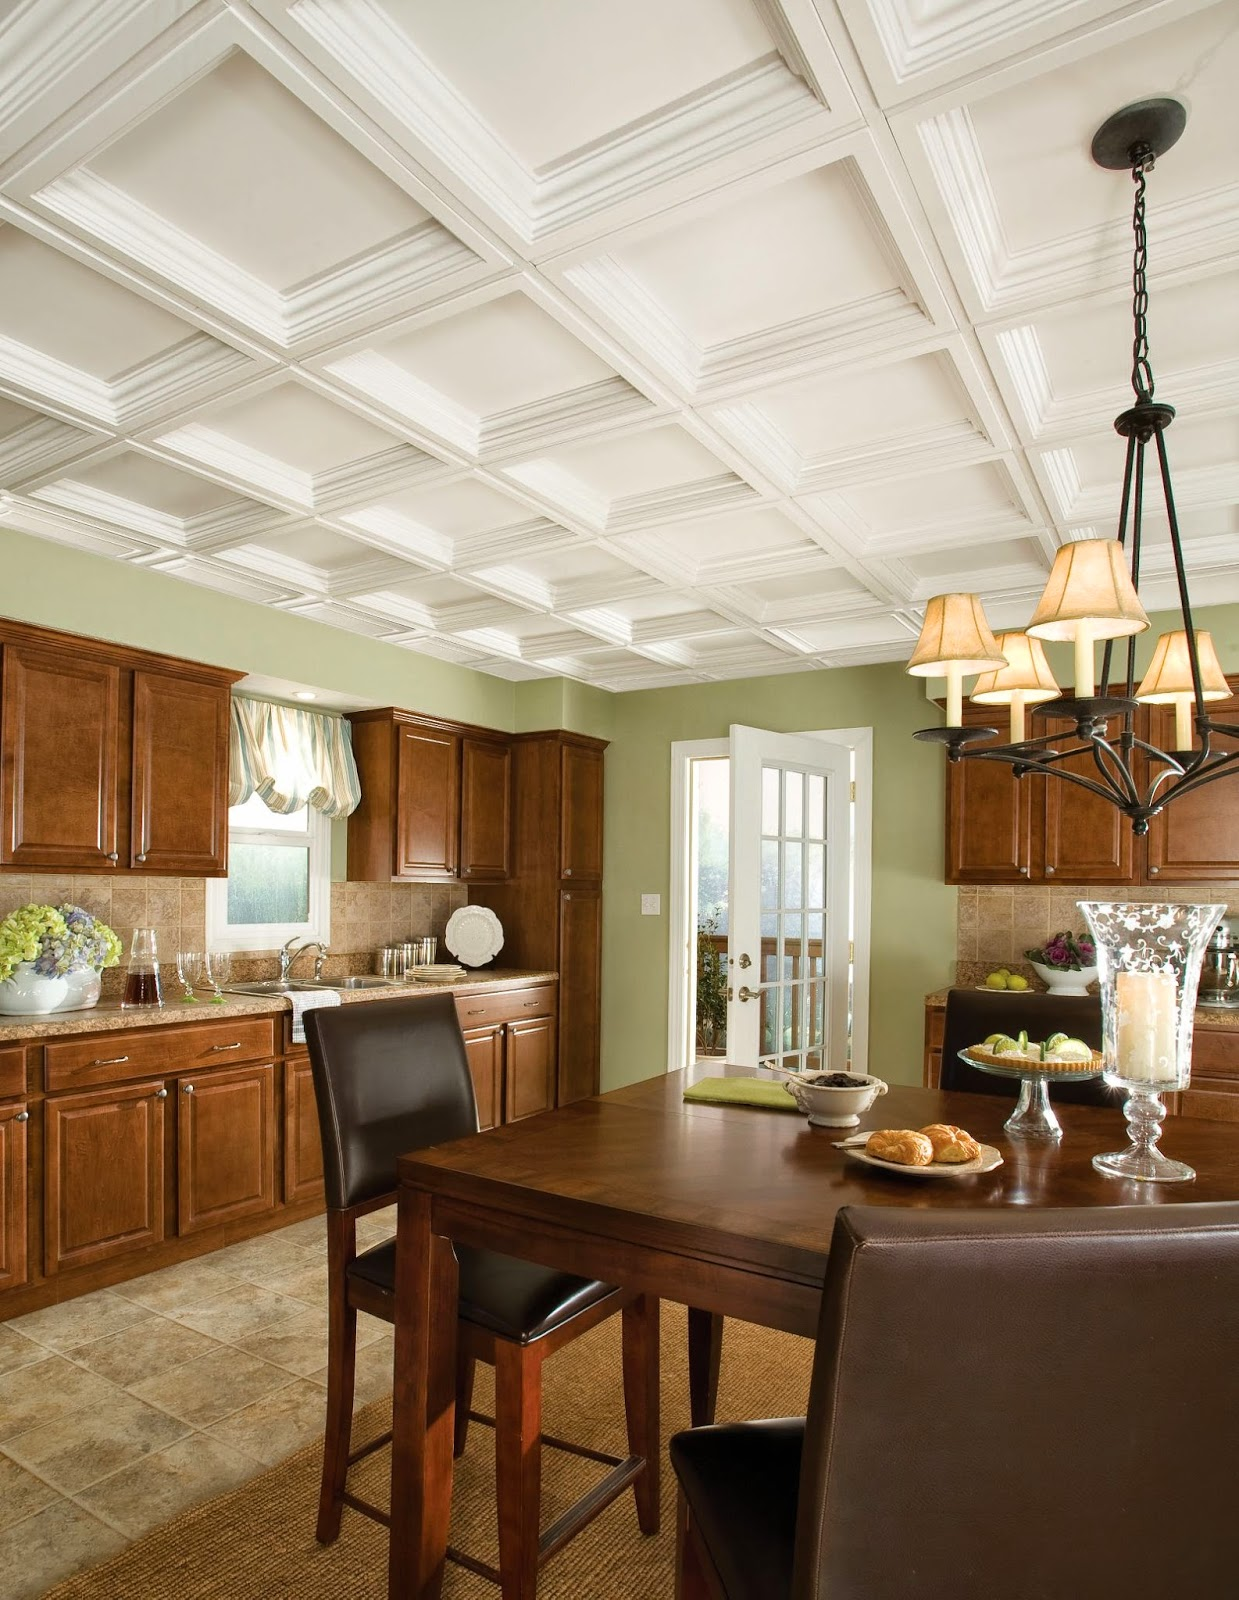 Inspired Whims: Cool Ceiling Solutions: Armstrong